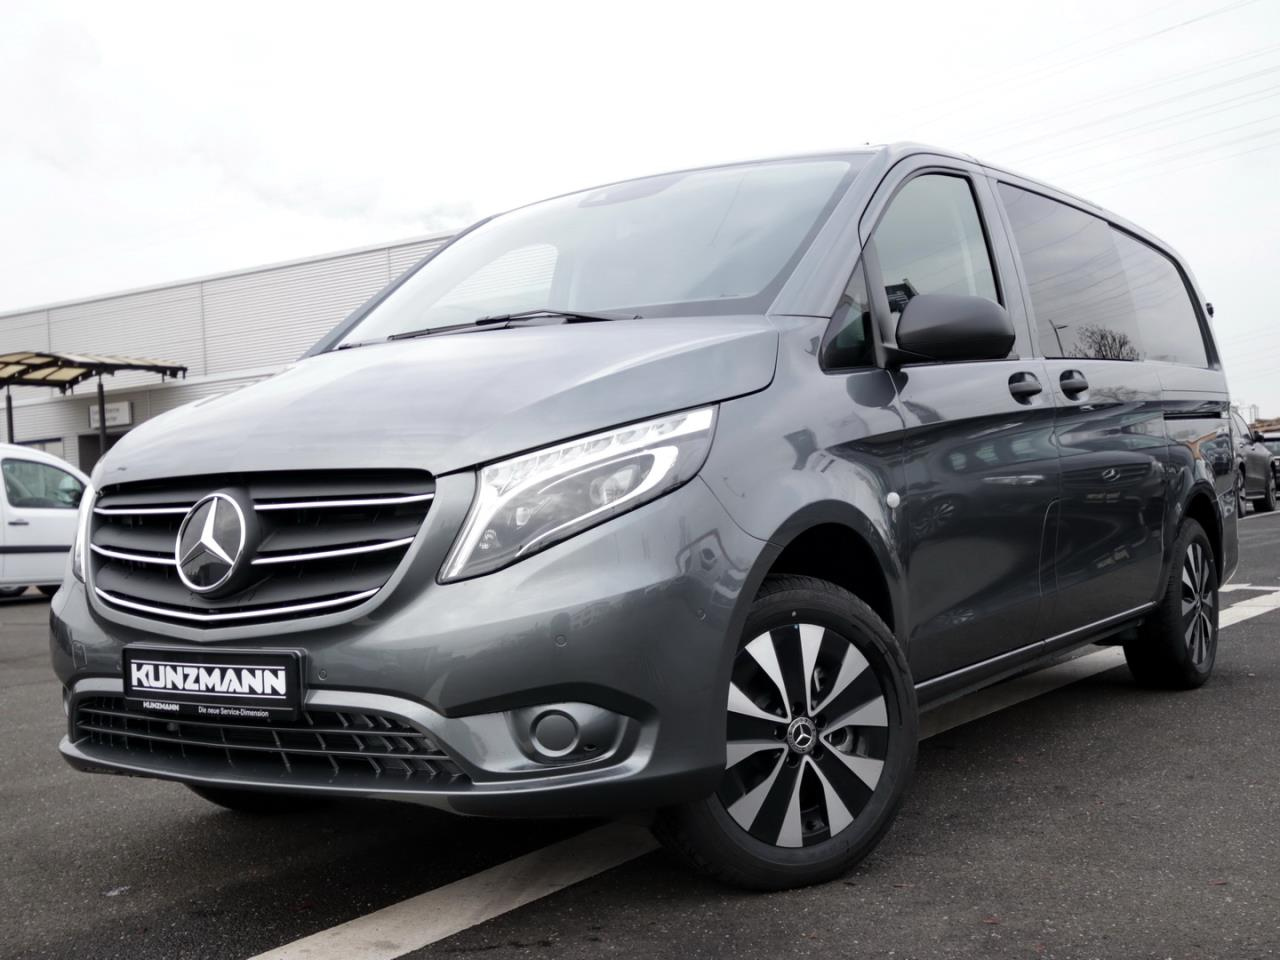 Mercedes-Benz Vito 119 CDI 4M Mixto lang Audio 40 LED Kamera